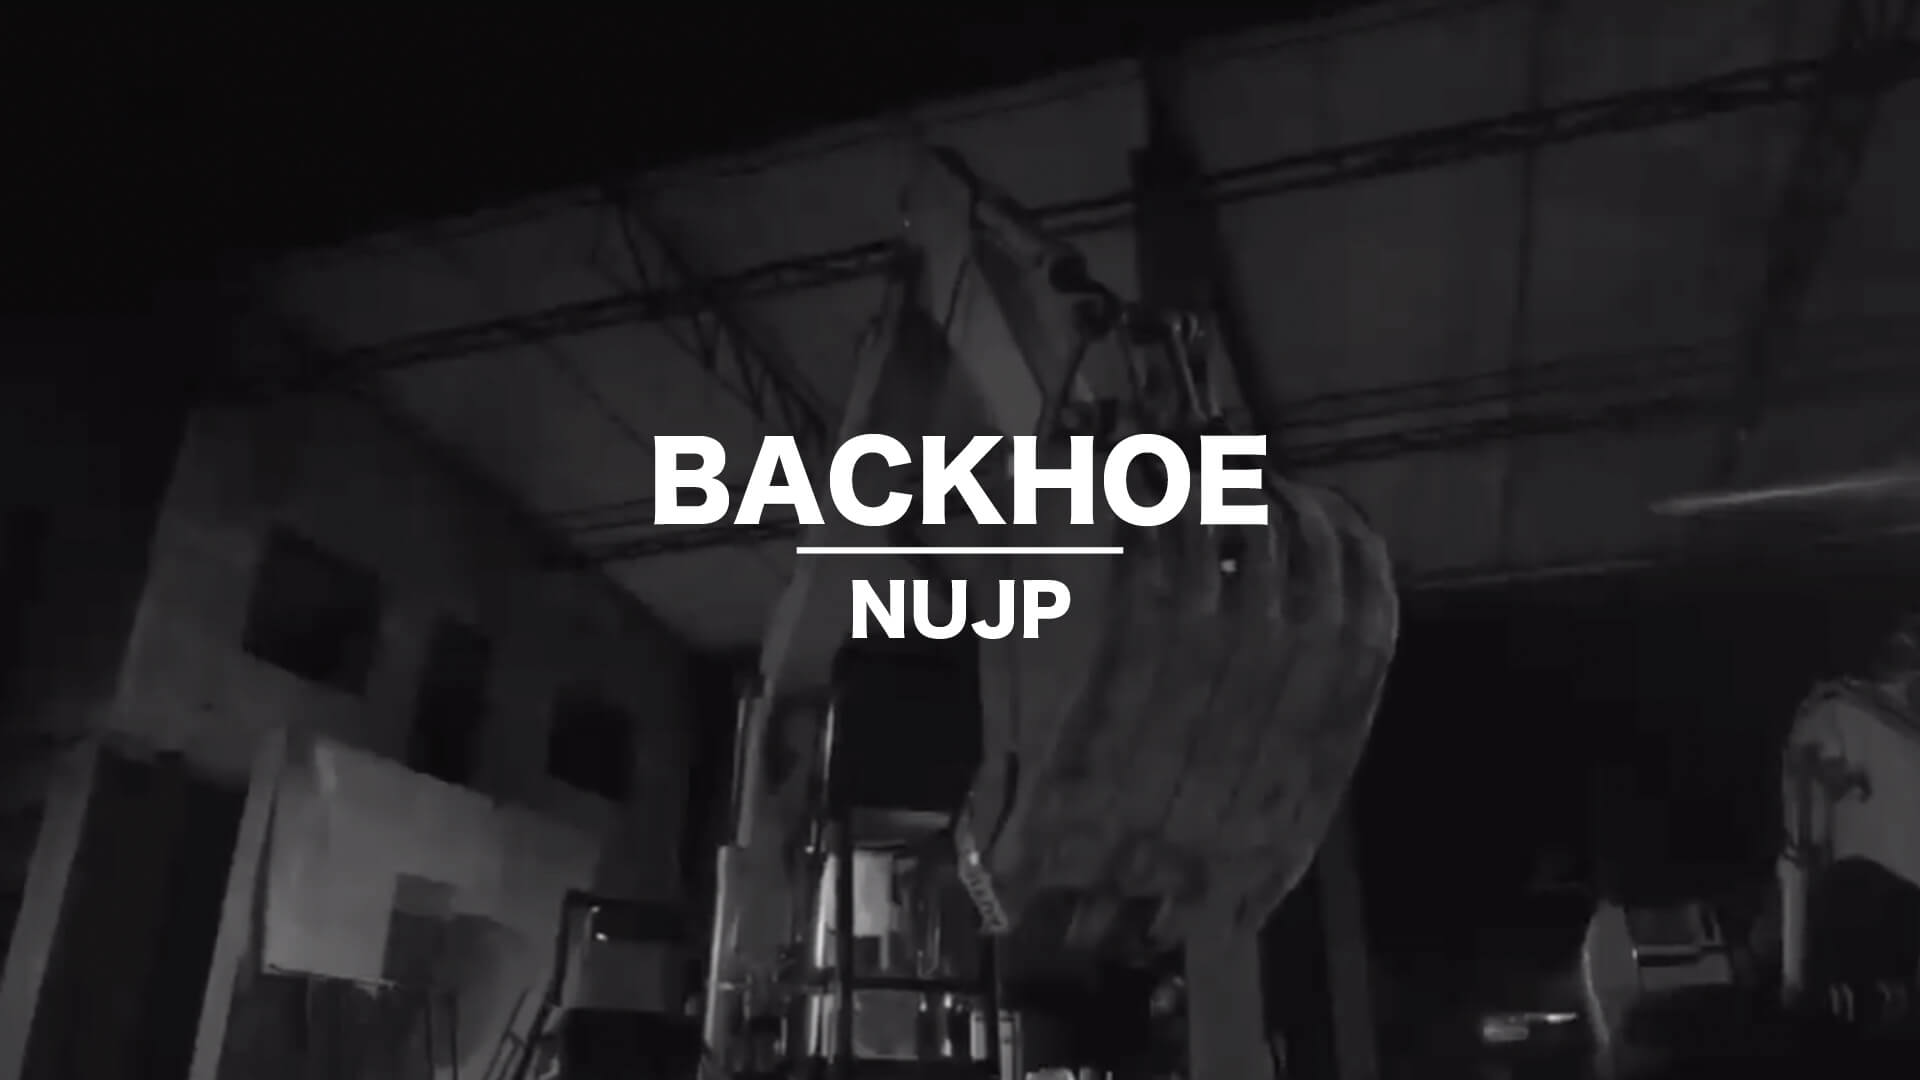 Project Backhoe NUJP